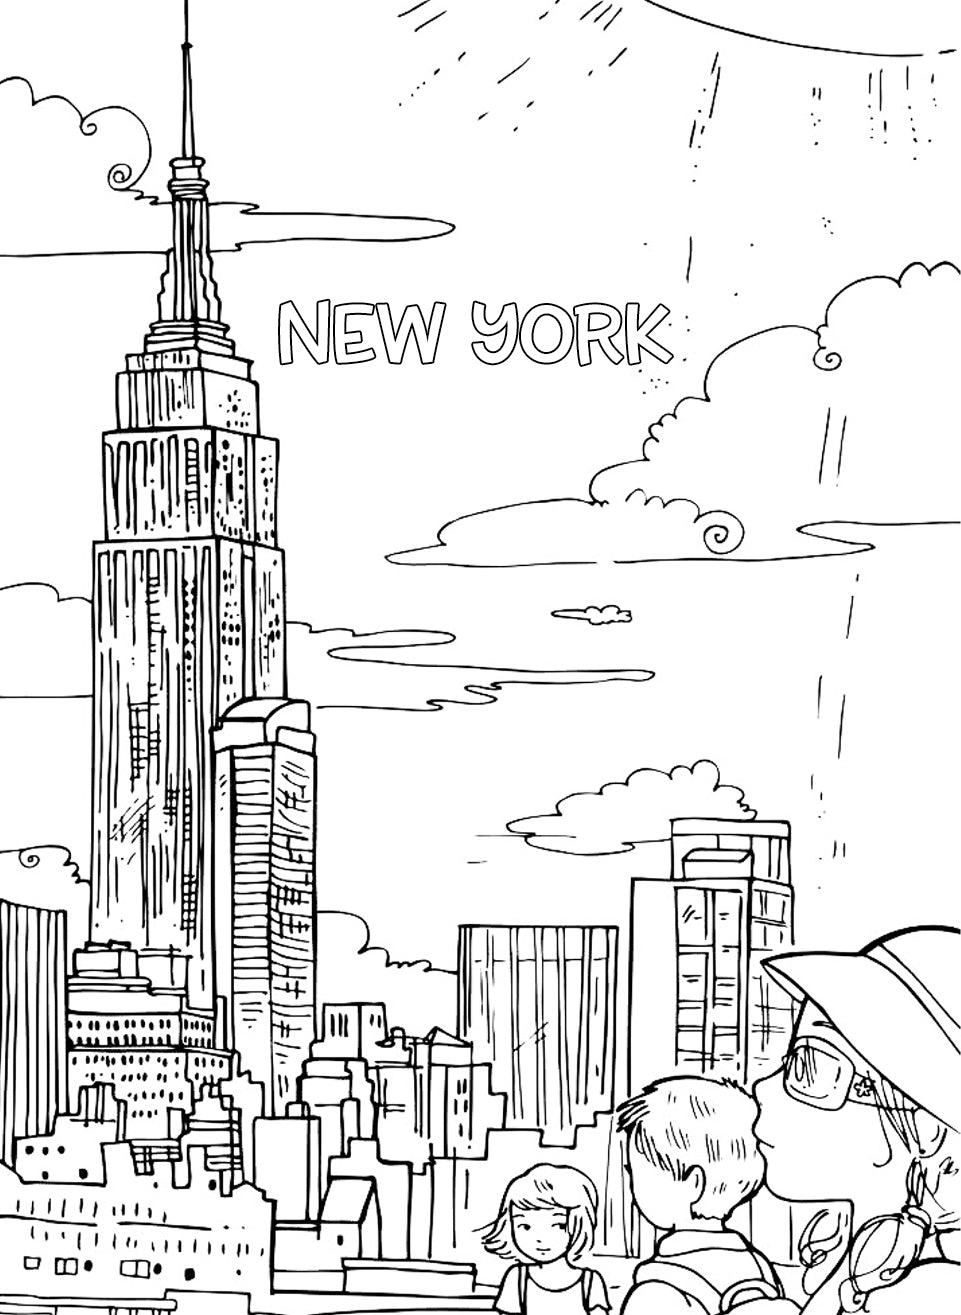 11 Free Travel Inspired Coloring Pages for Kids Pictureta